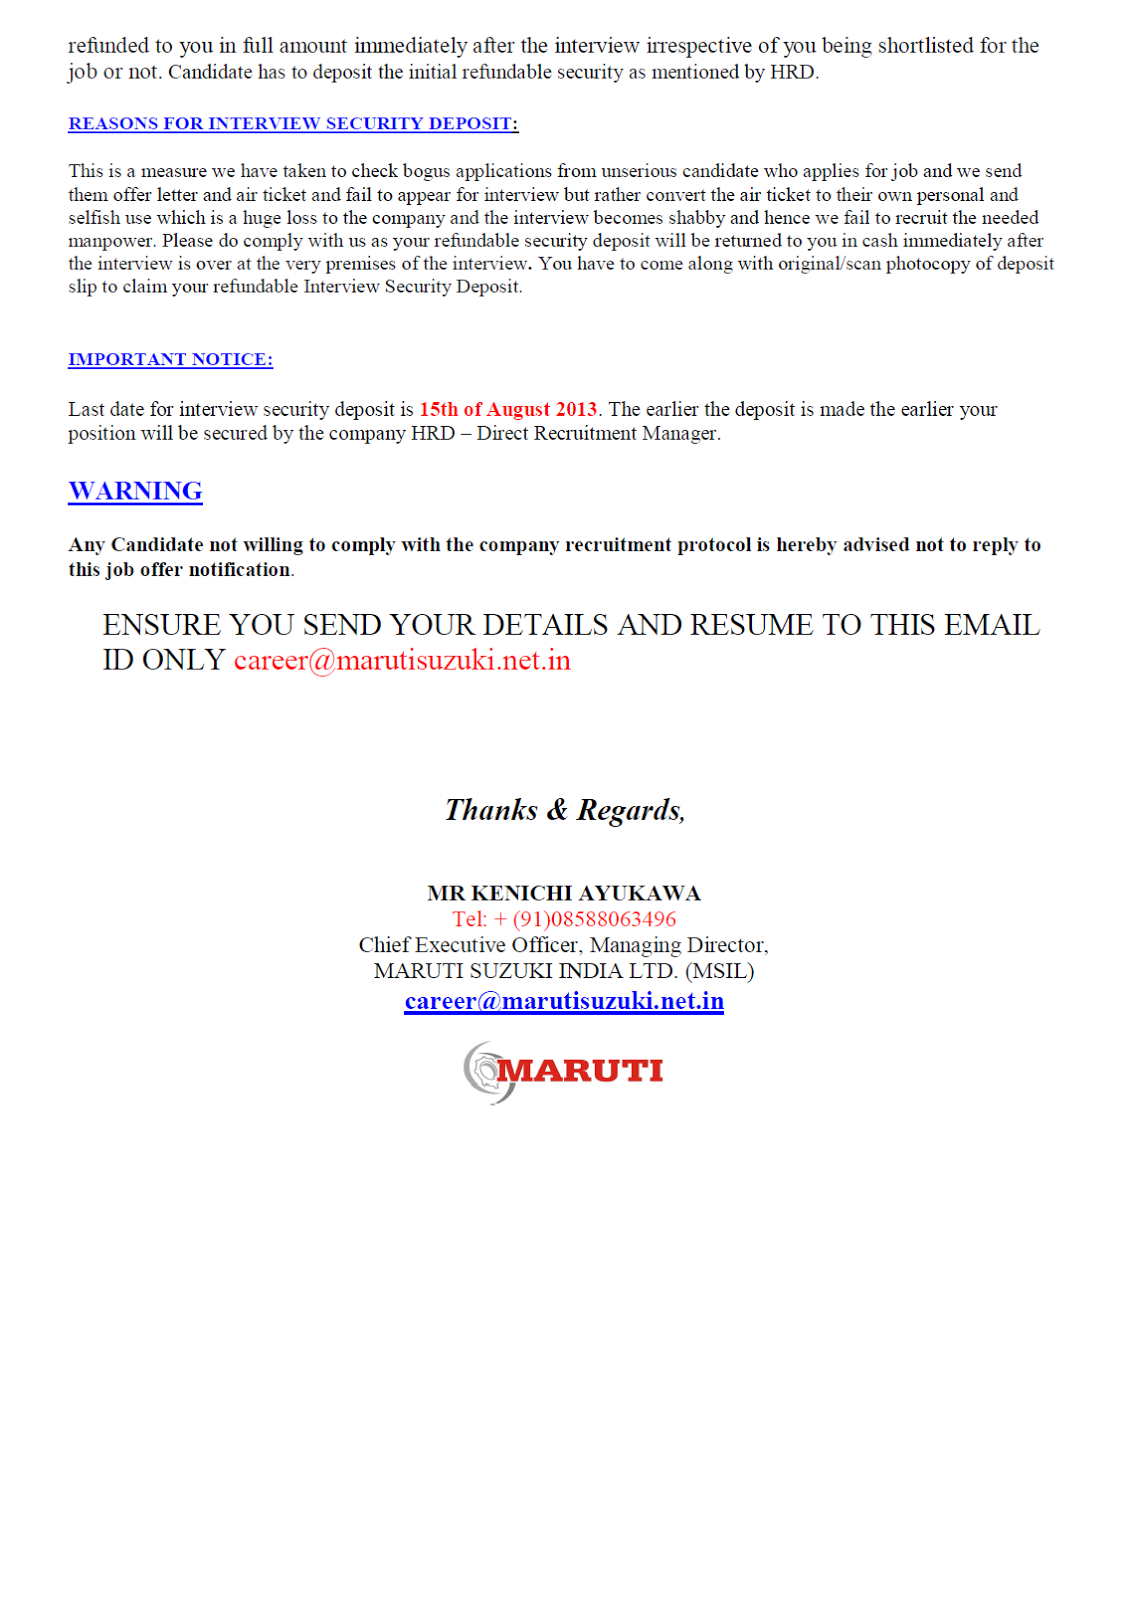 by the ca of the ca and for the ca beware of fake employers at a first glance this letter looks as if it has been directly sent by maruti suzuki but in reality this has been sent by the same spammers